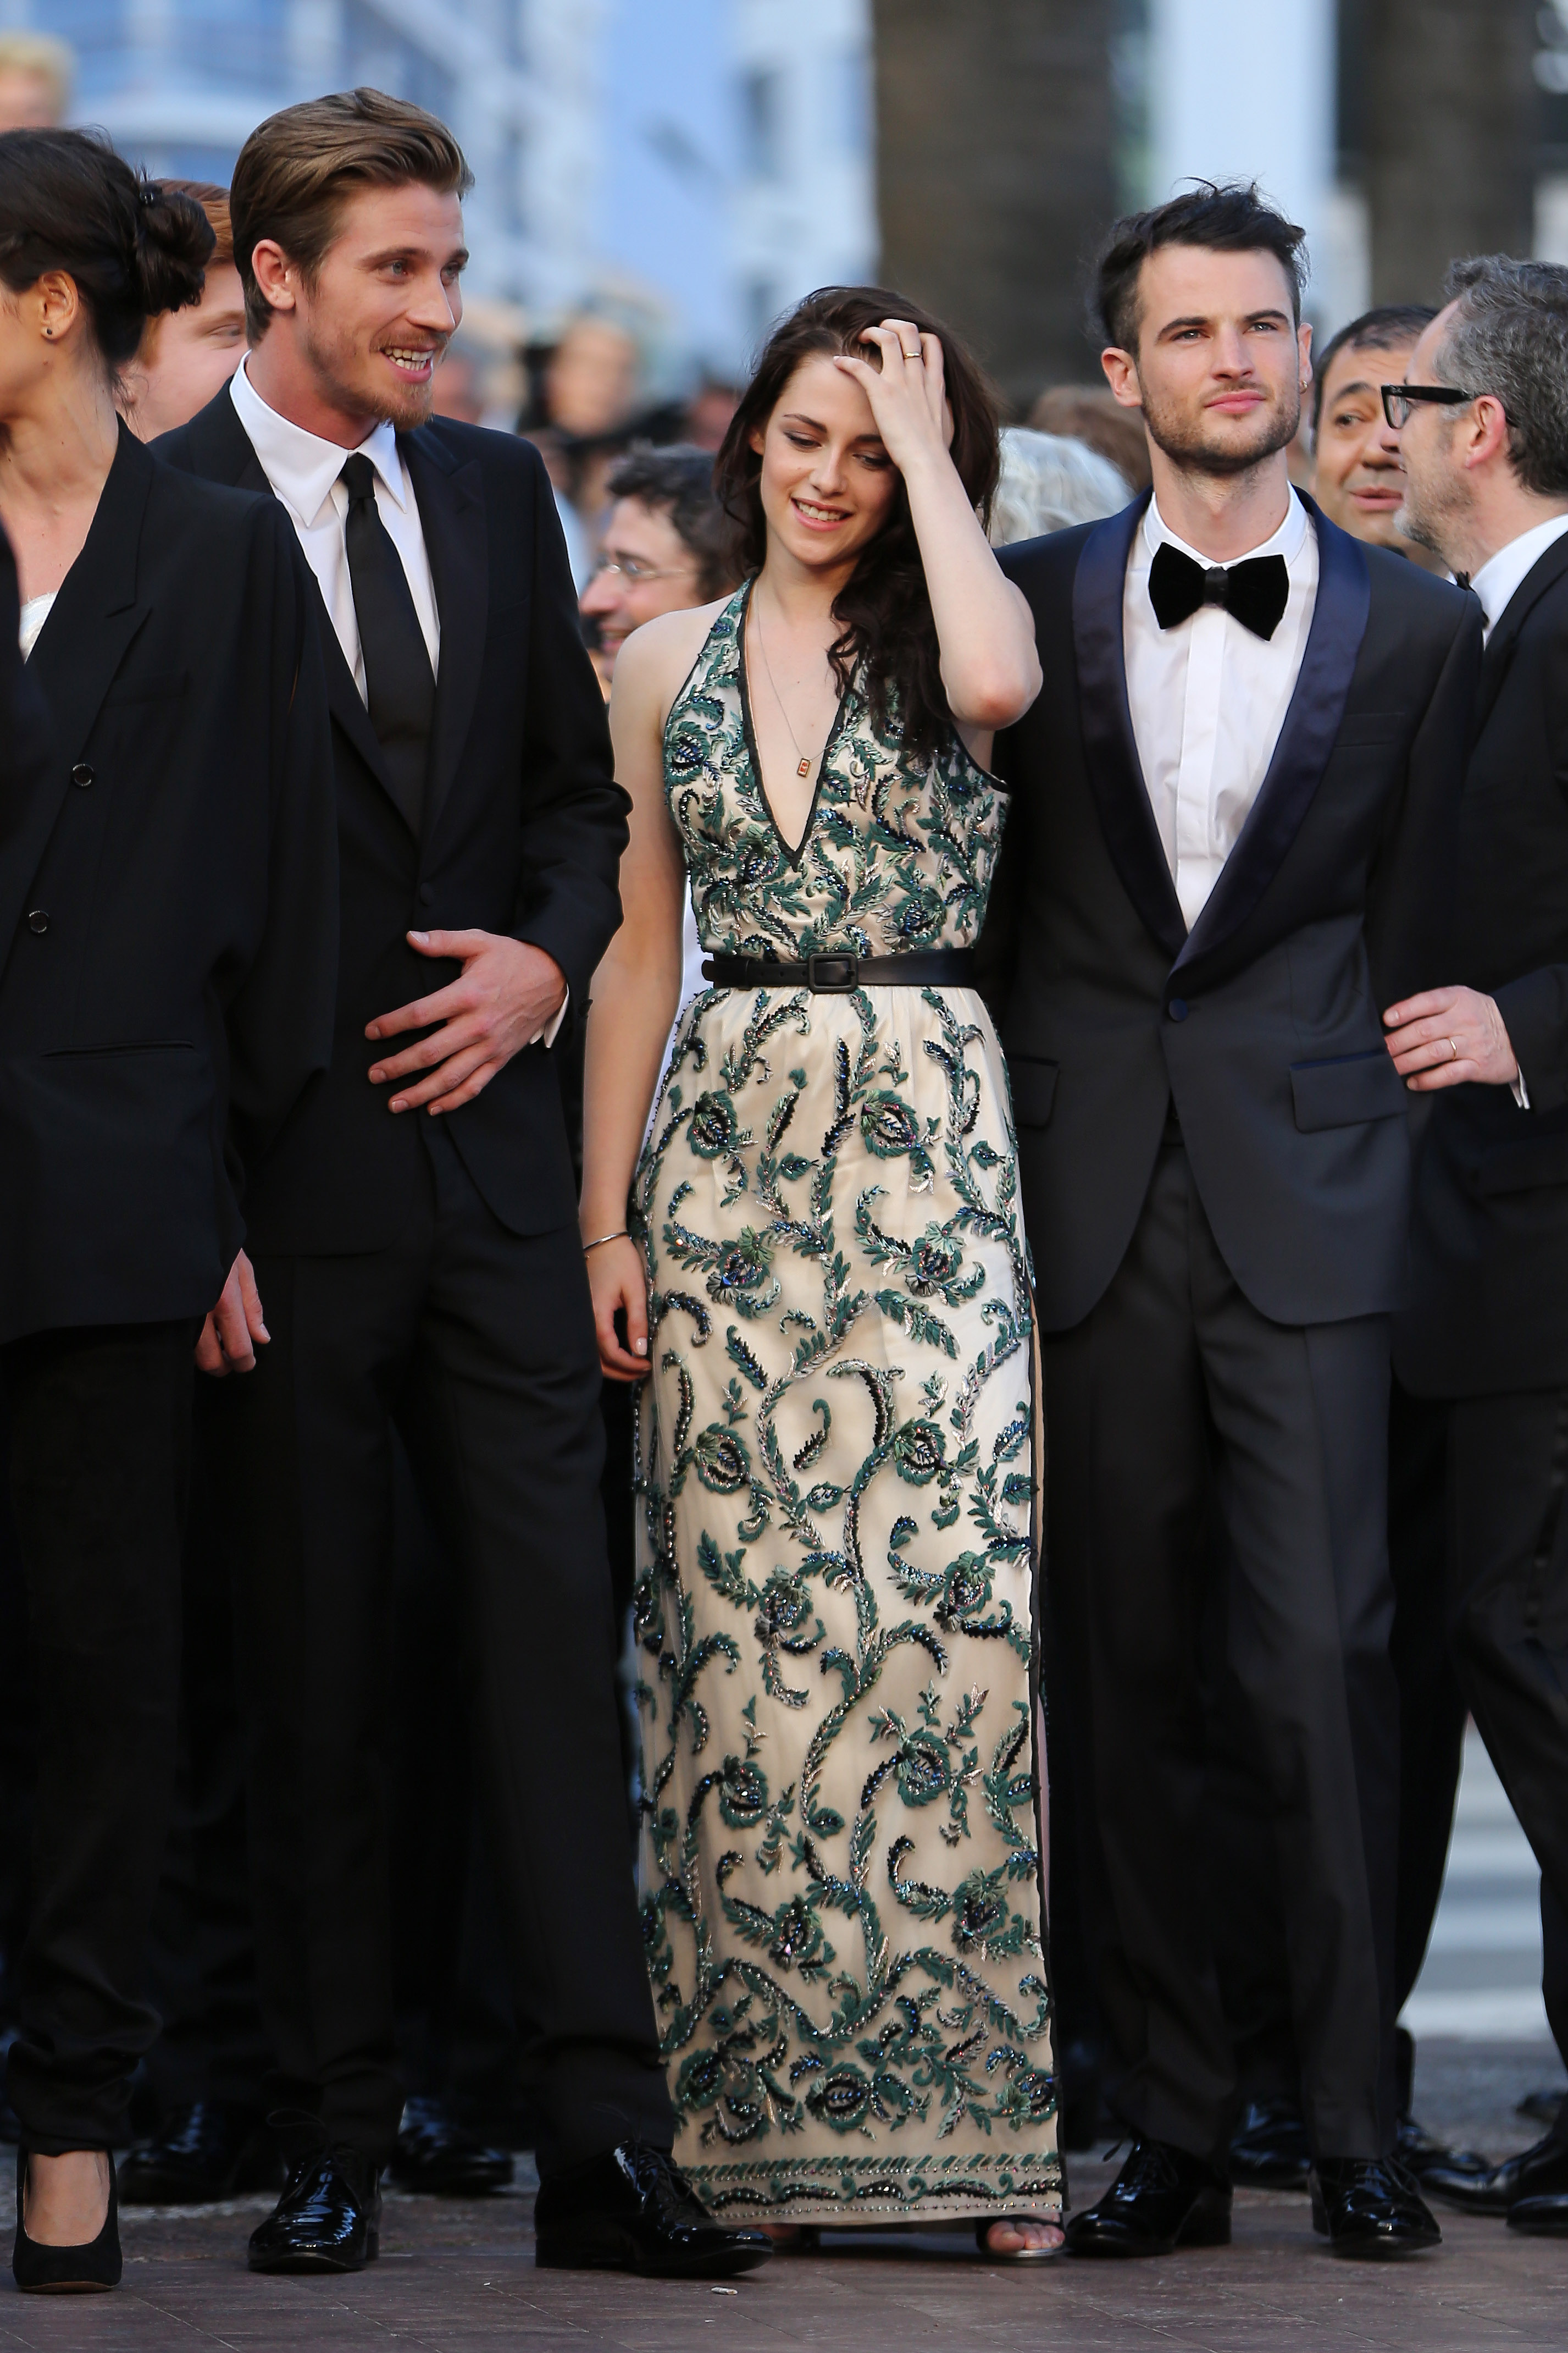 Kristen Stewart On The Road Pour le Tapis Rouge de Cannes (2012)